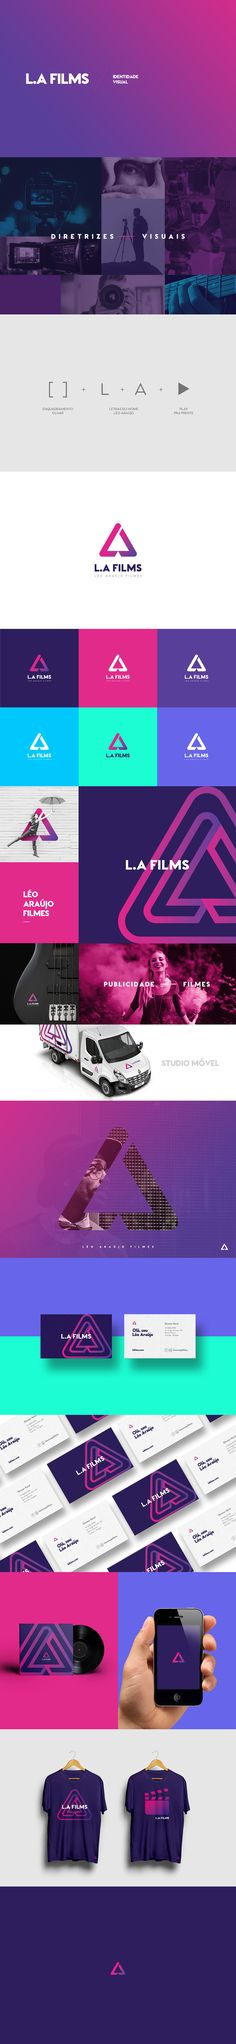 L.A Films on Behance